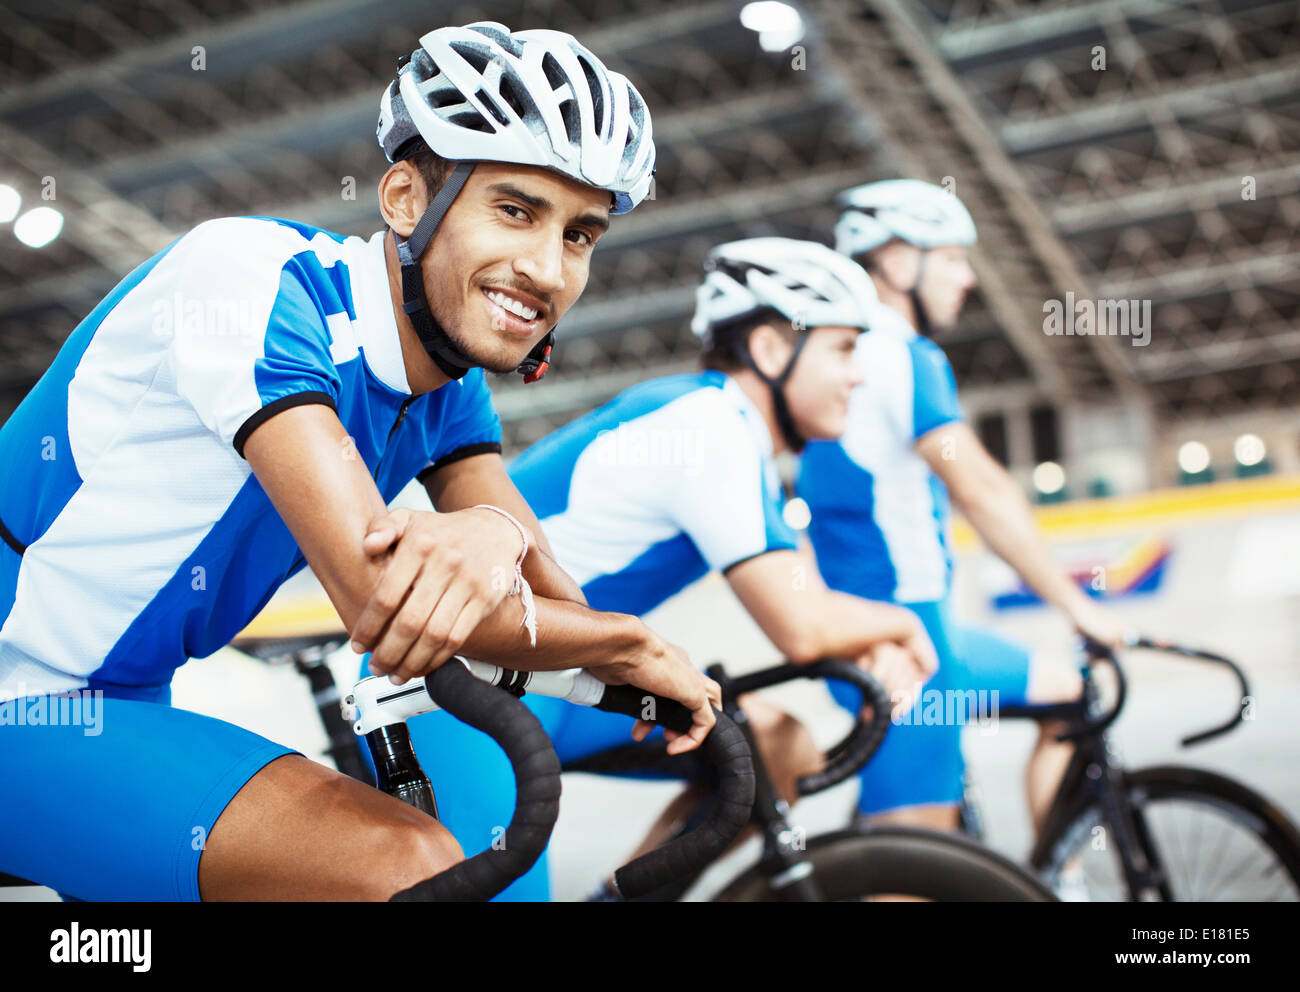 Track cycling team waiting in velodrome - Stock Image